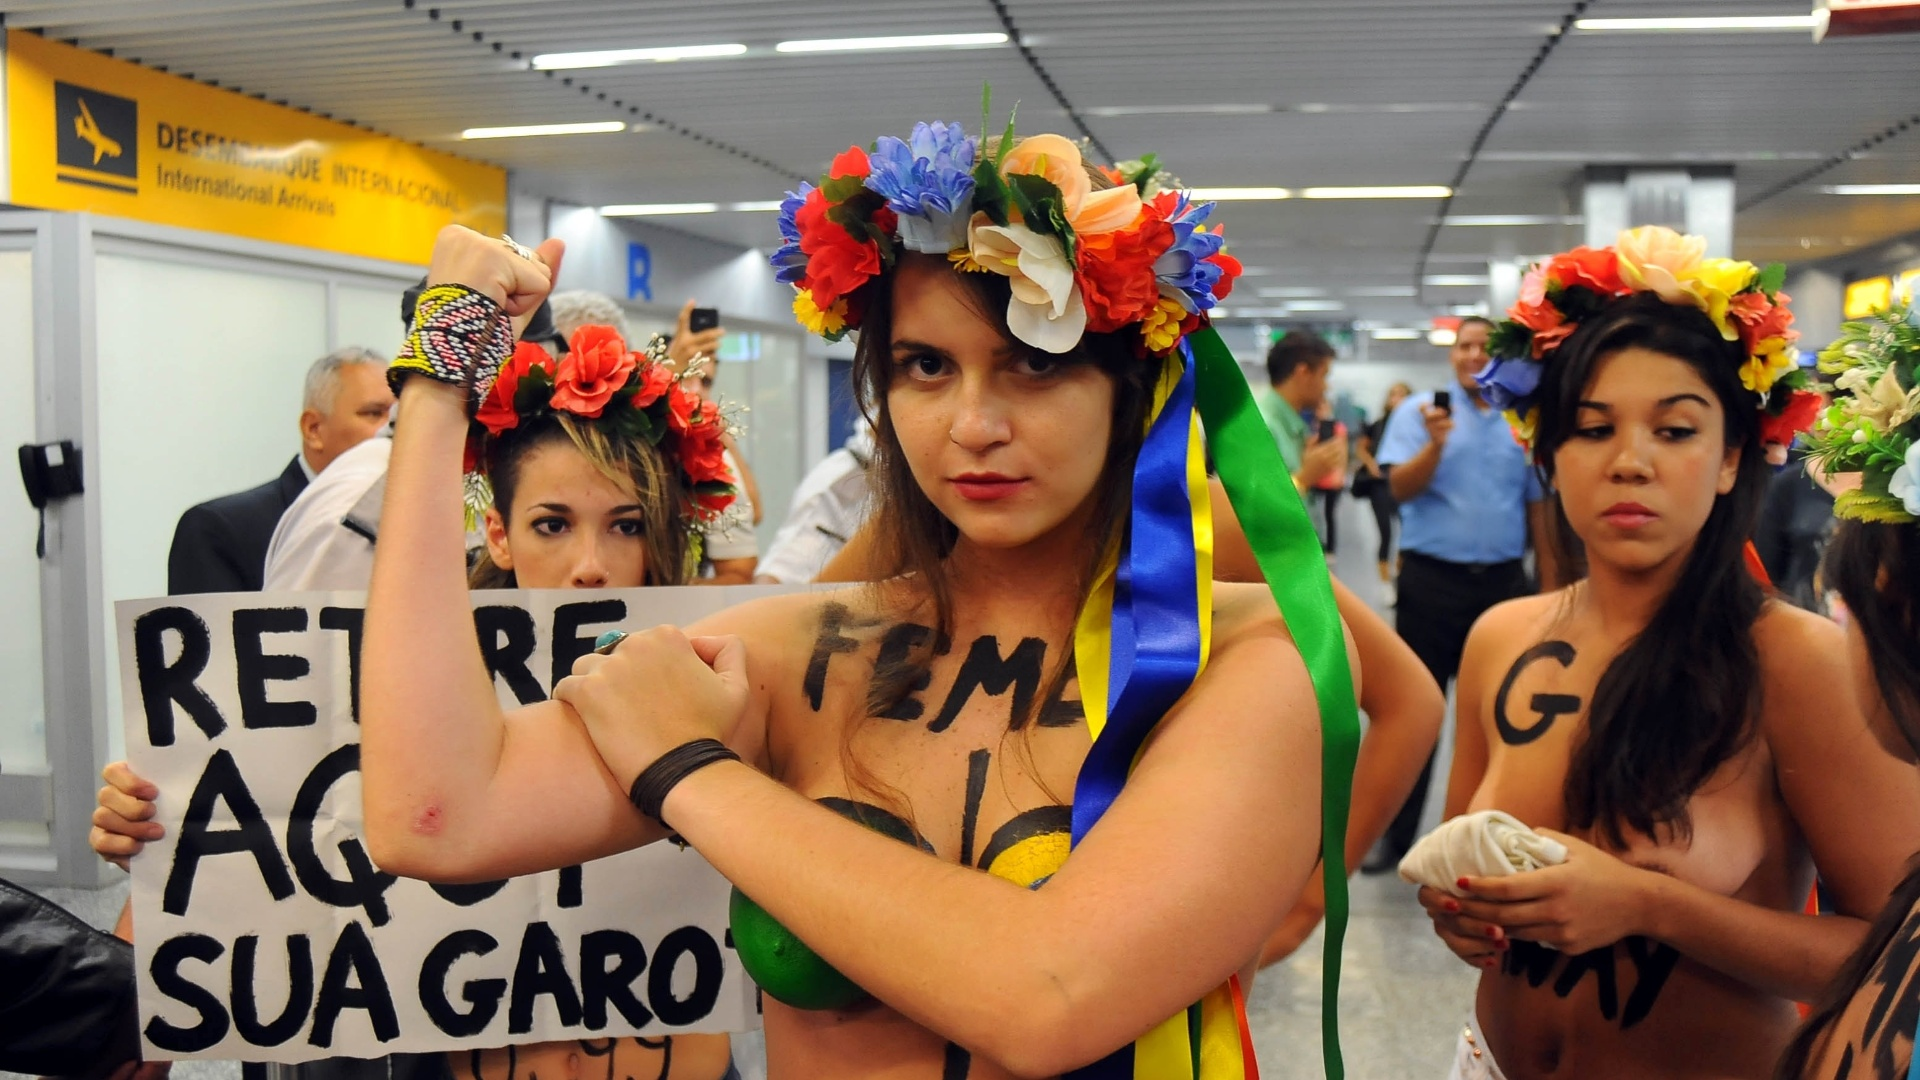 8.fev.2012 - Integrantes do grupo feminista Femen Brasil protestam contra o turismo sexual, no aeroporto do Galeo, no Rio de Janeiro 